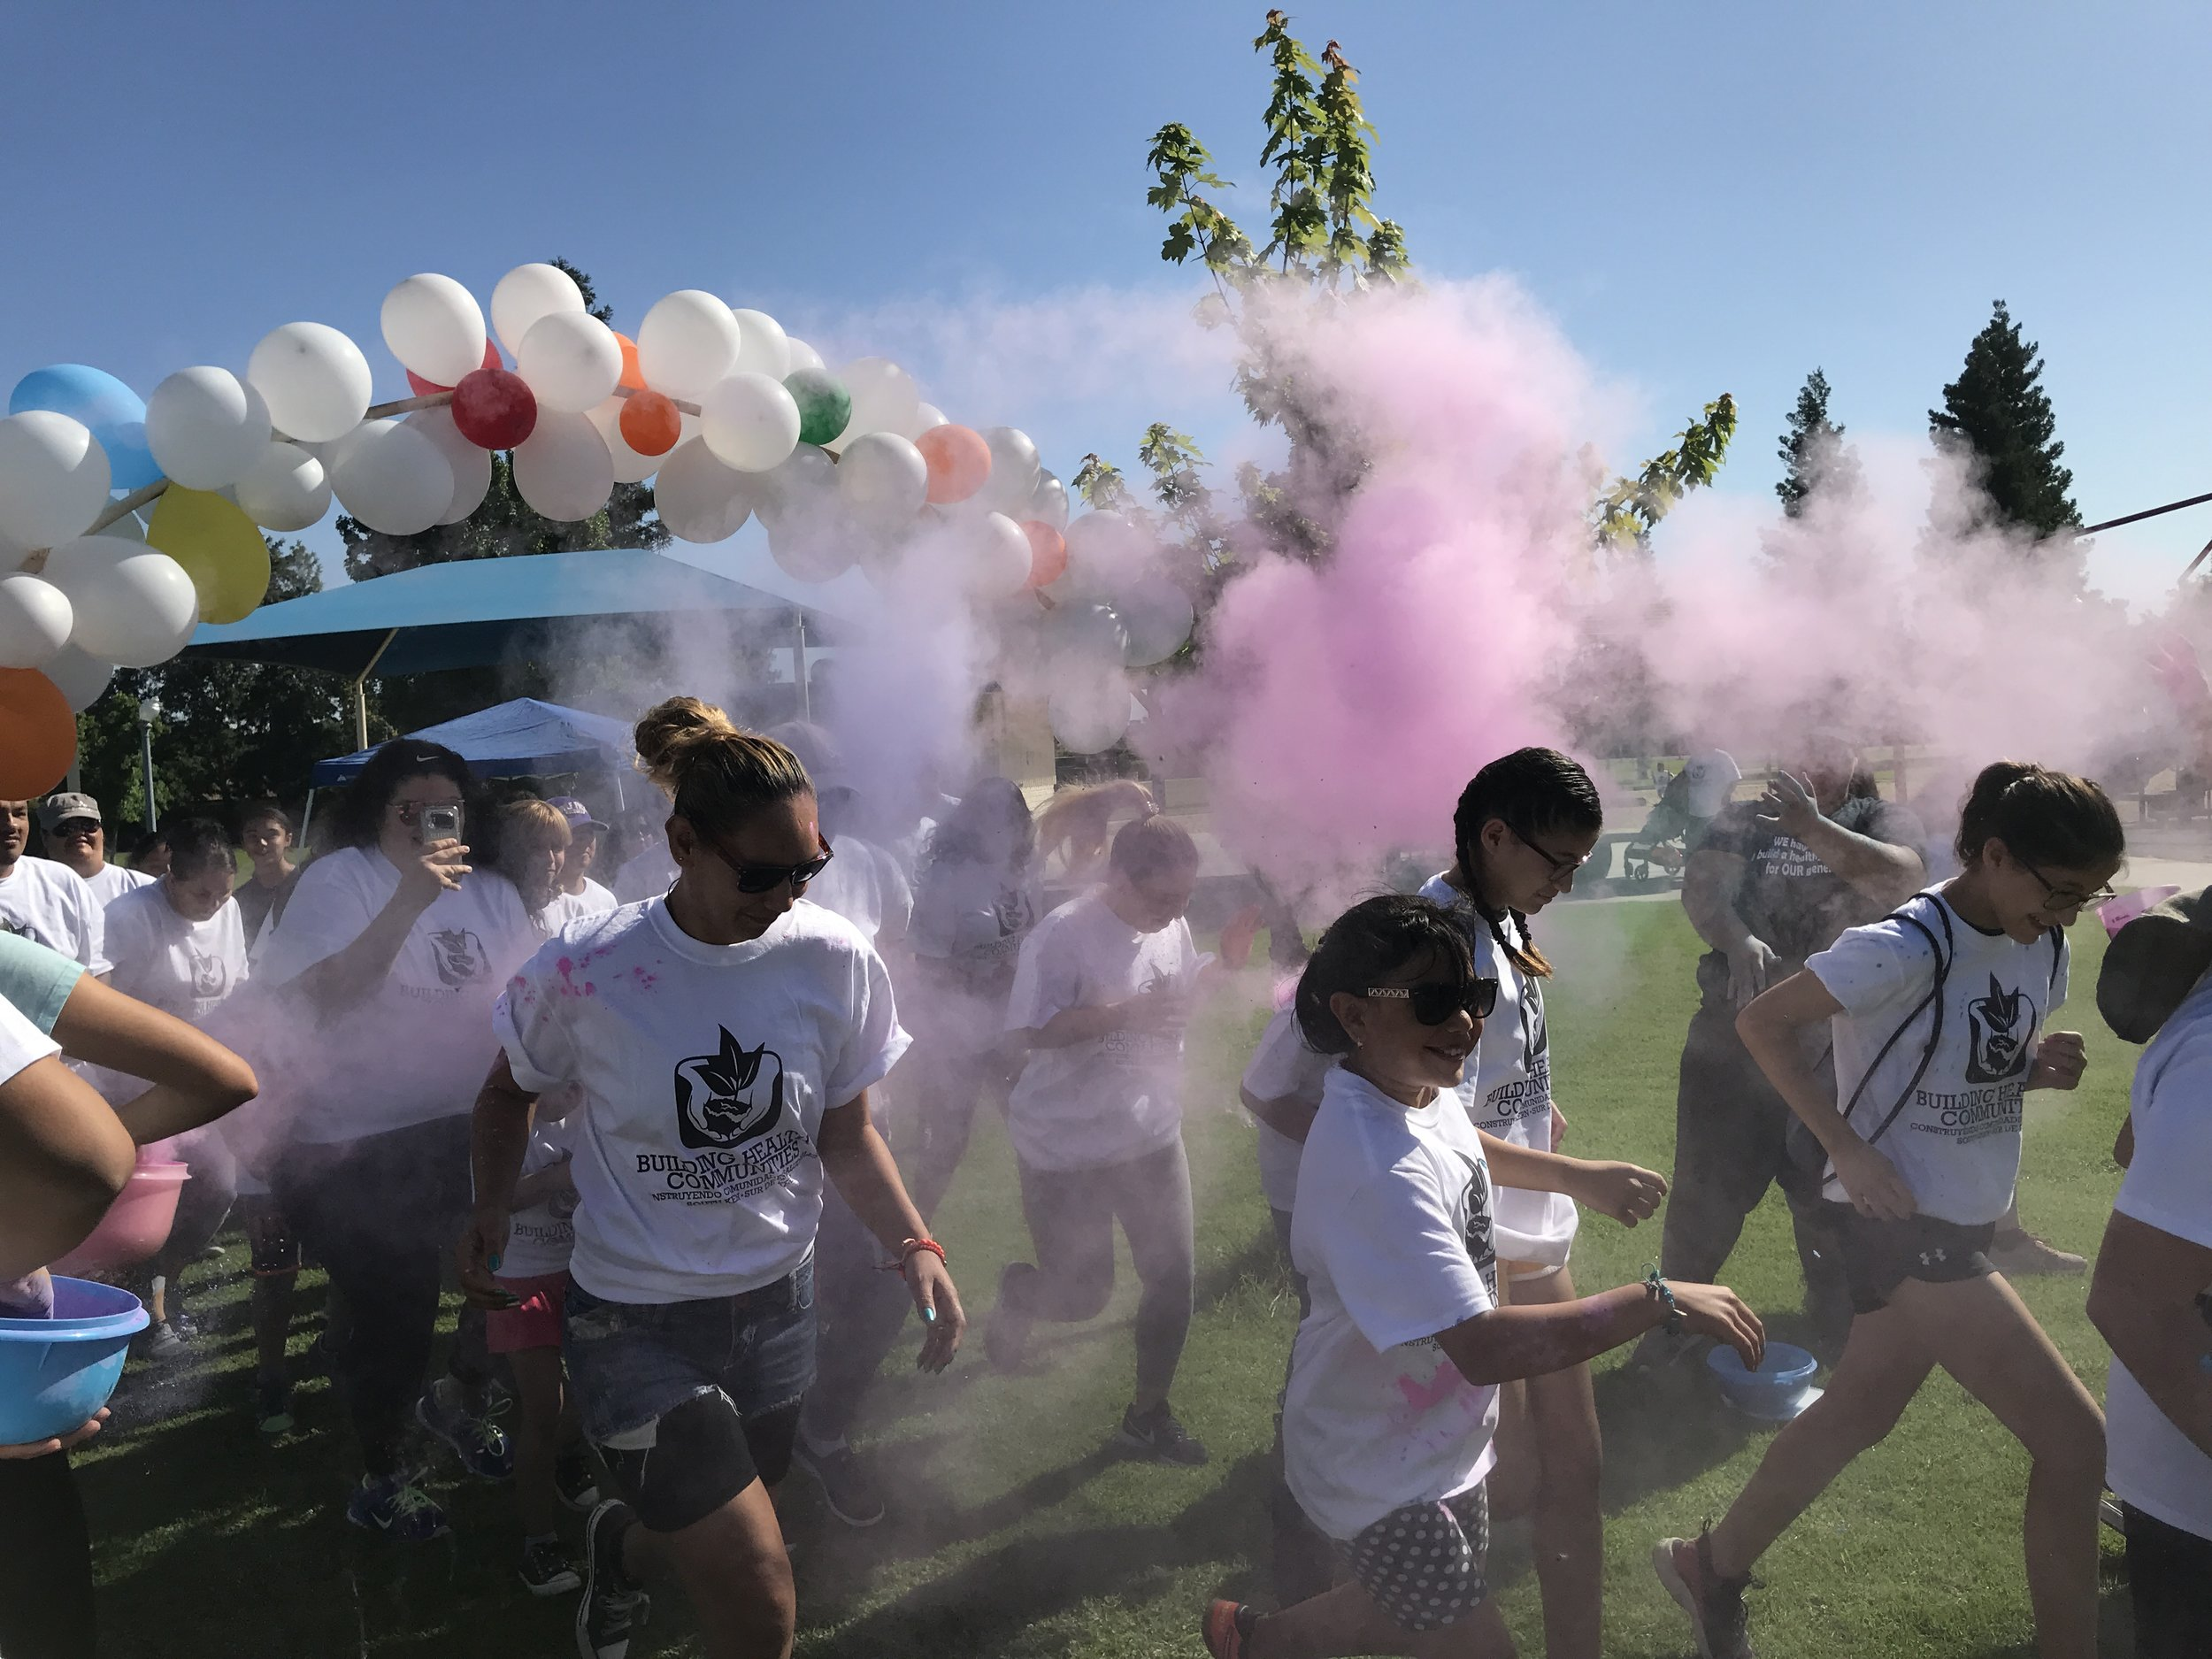 Kicking off our color run at the PASS event in Stiern Park.